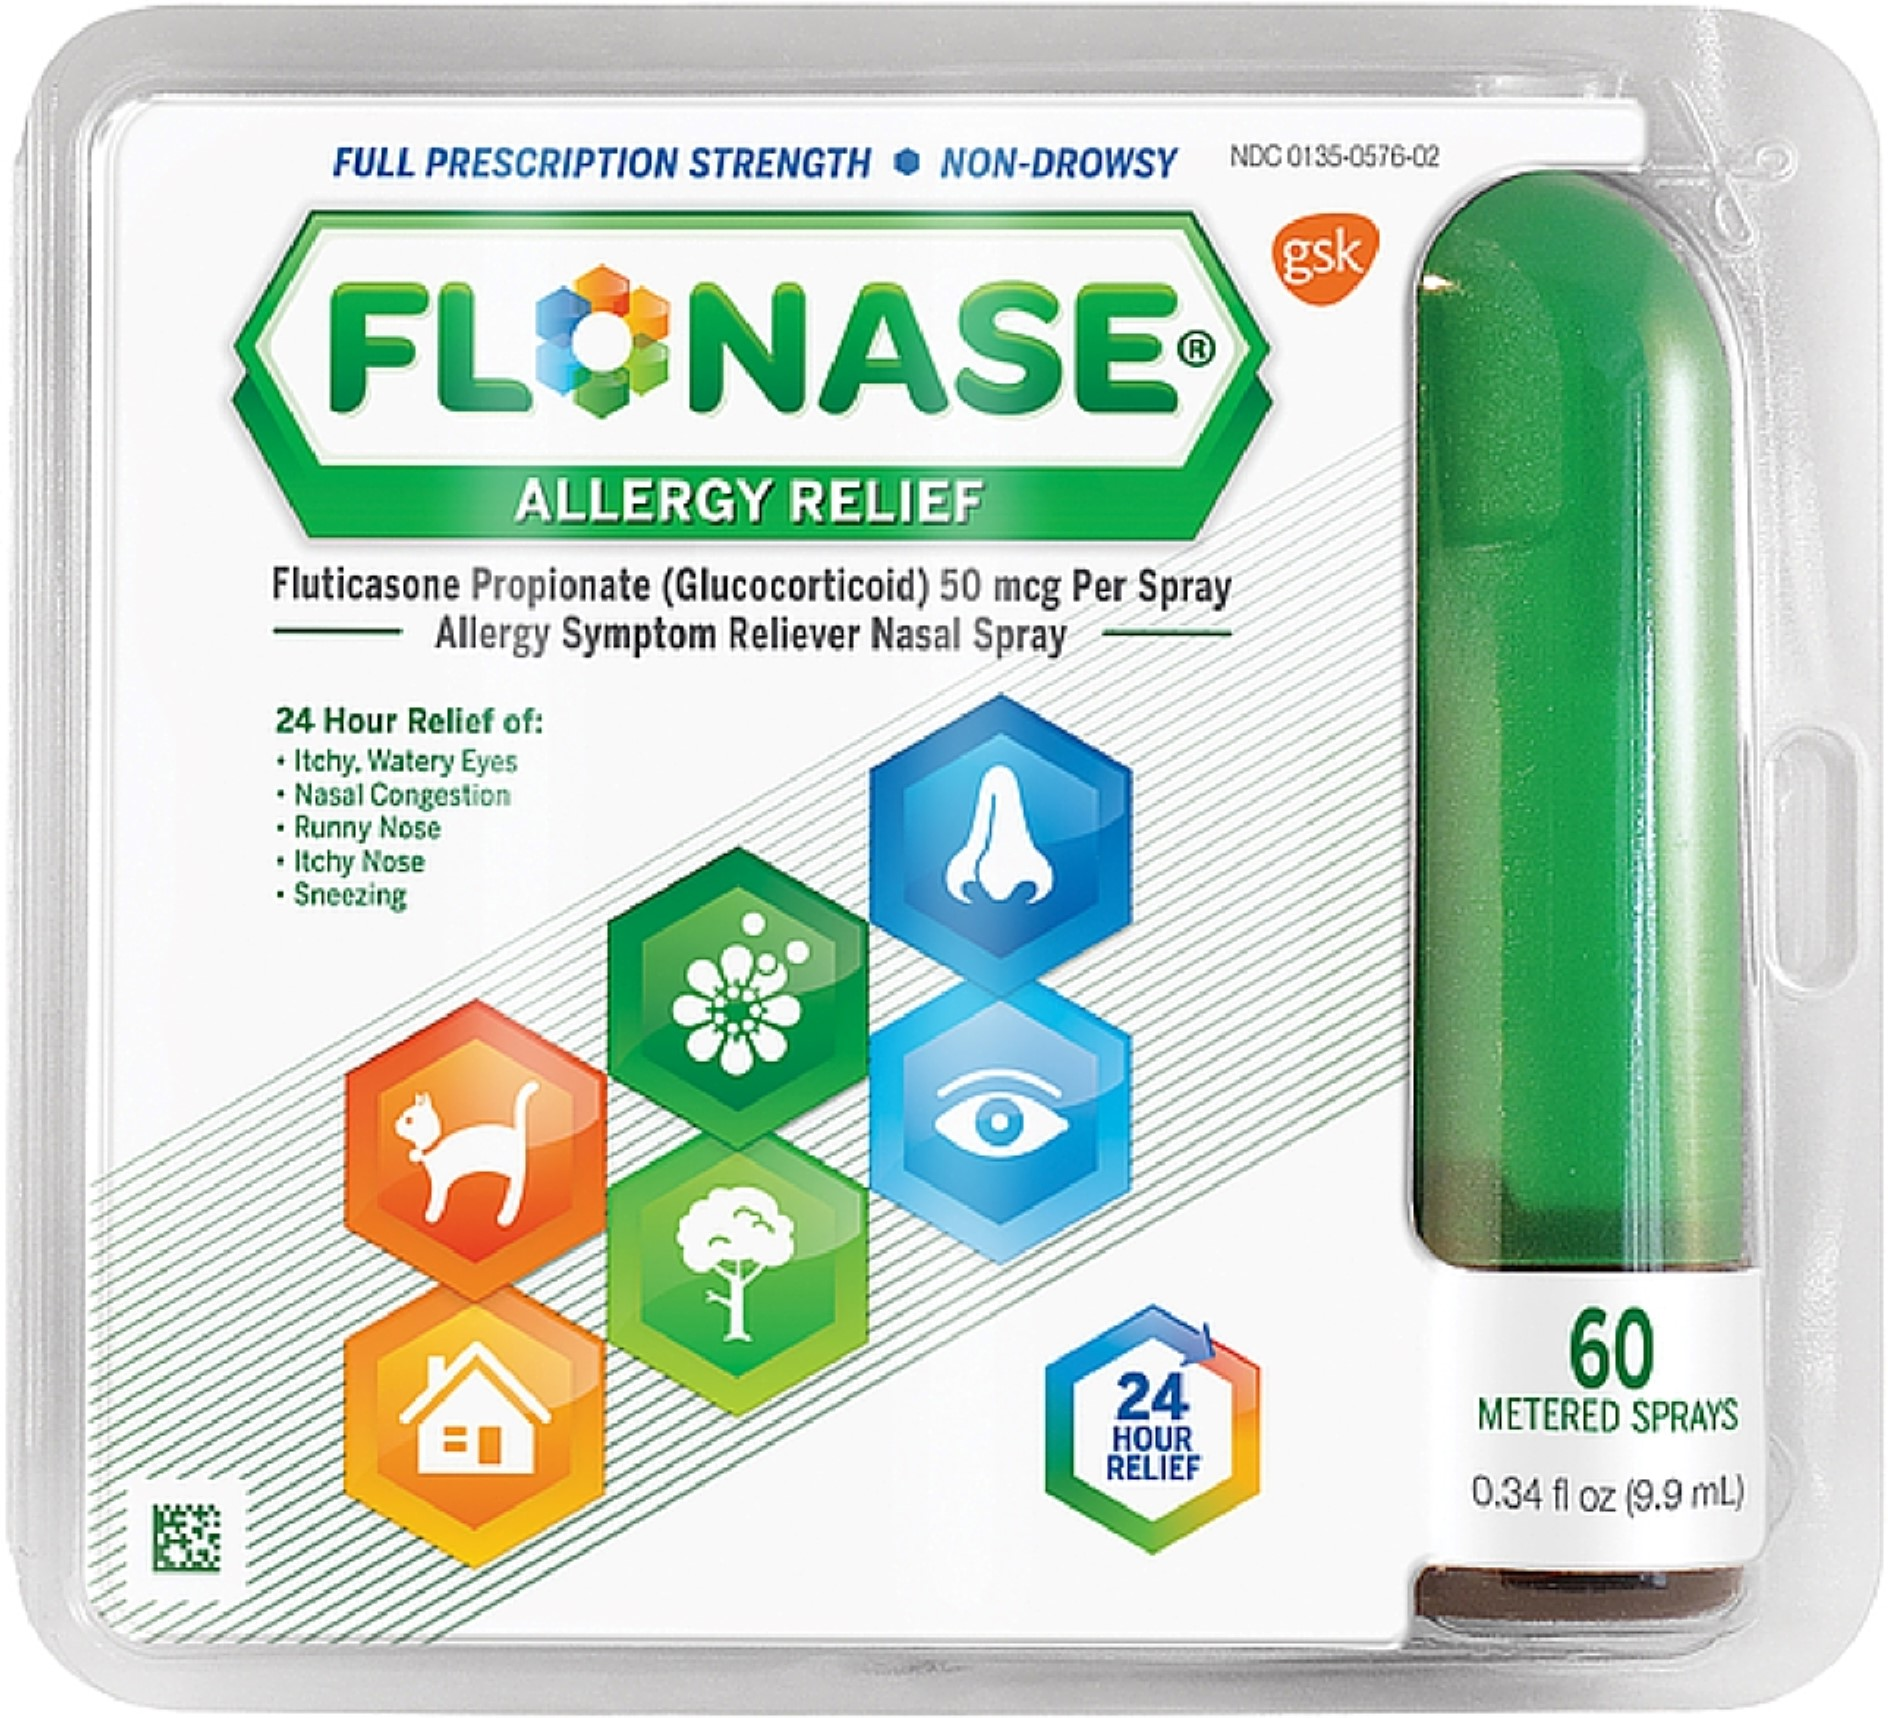 Flonase Allergy Relief Nasal Spray 60 Metered Sprays (Pack of 6)